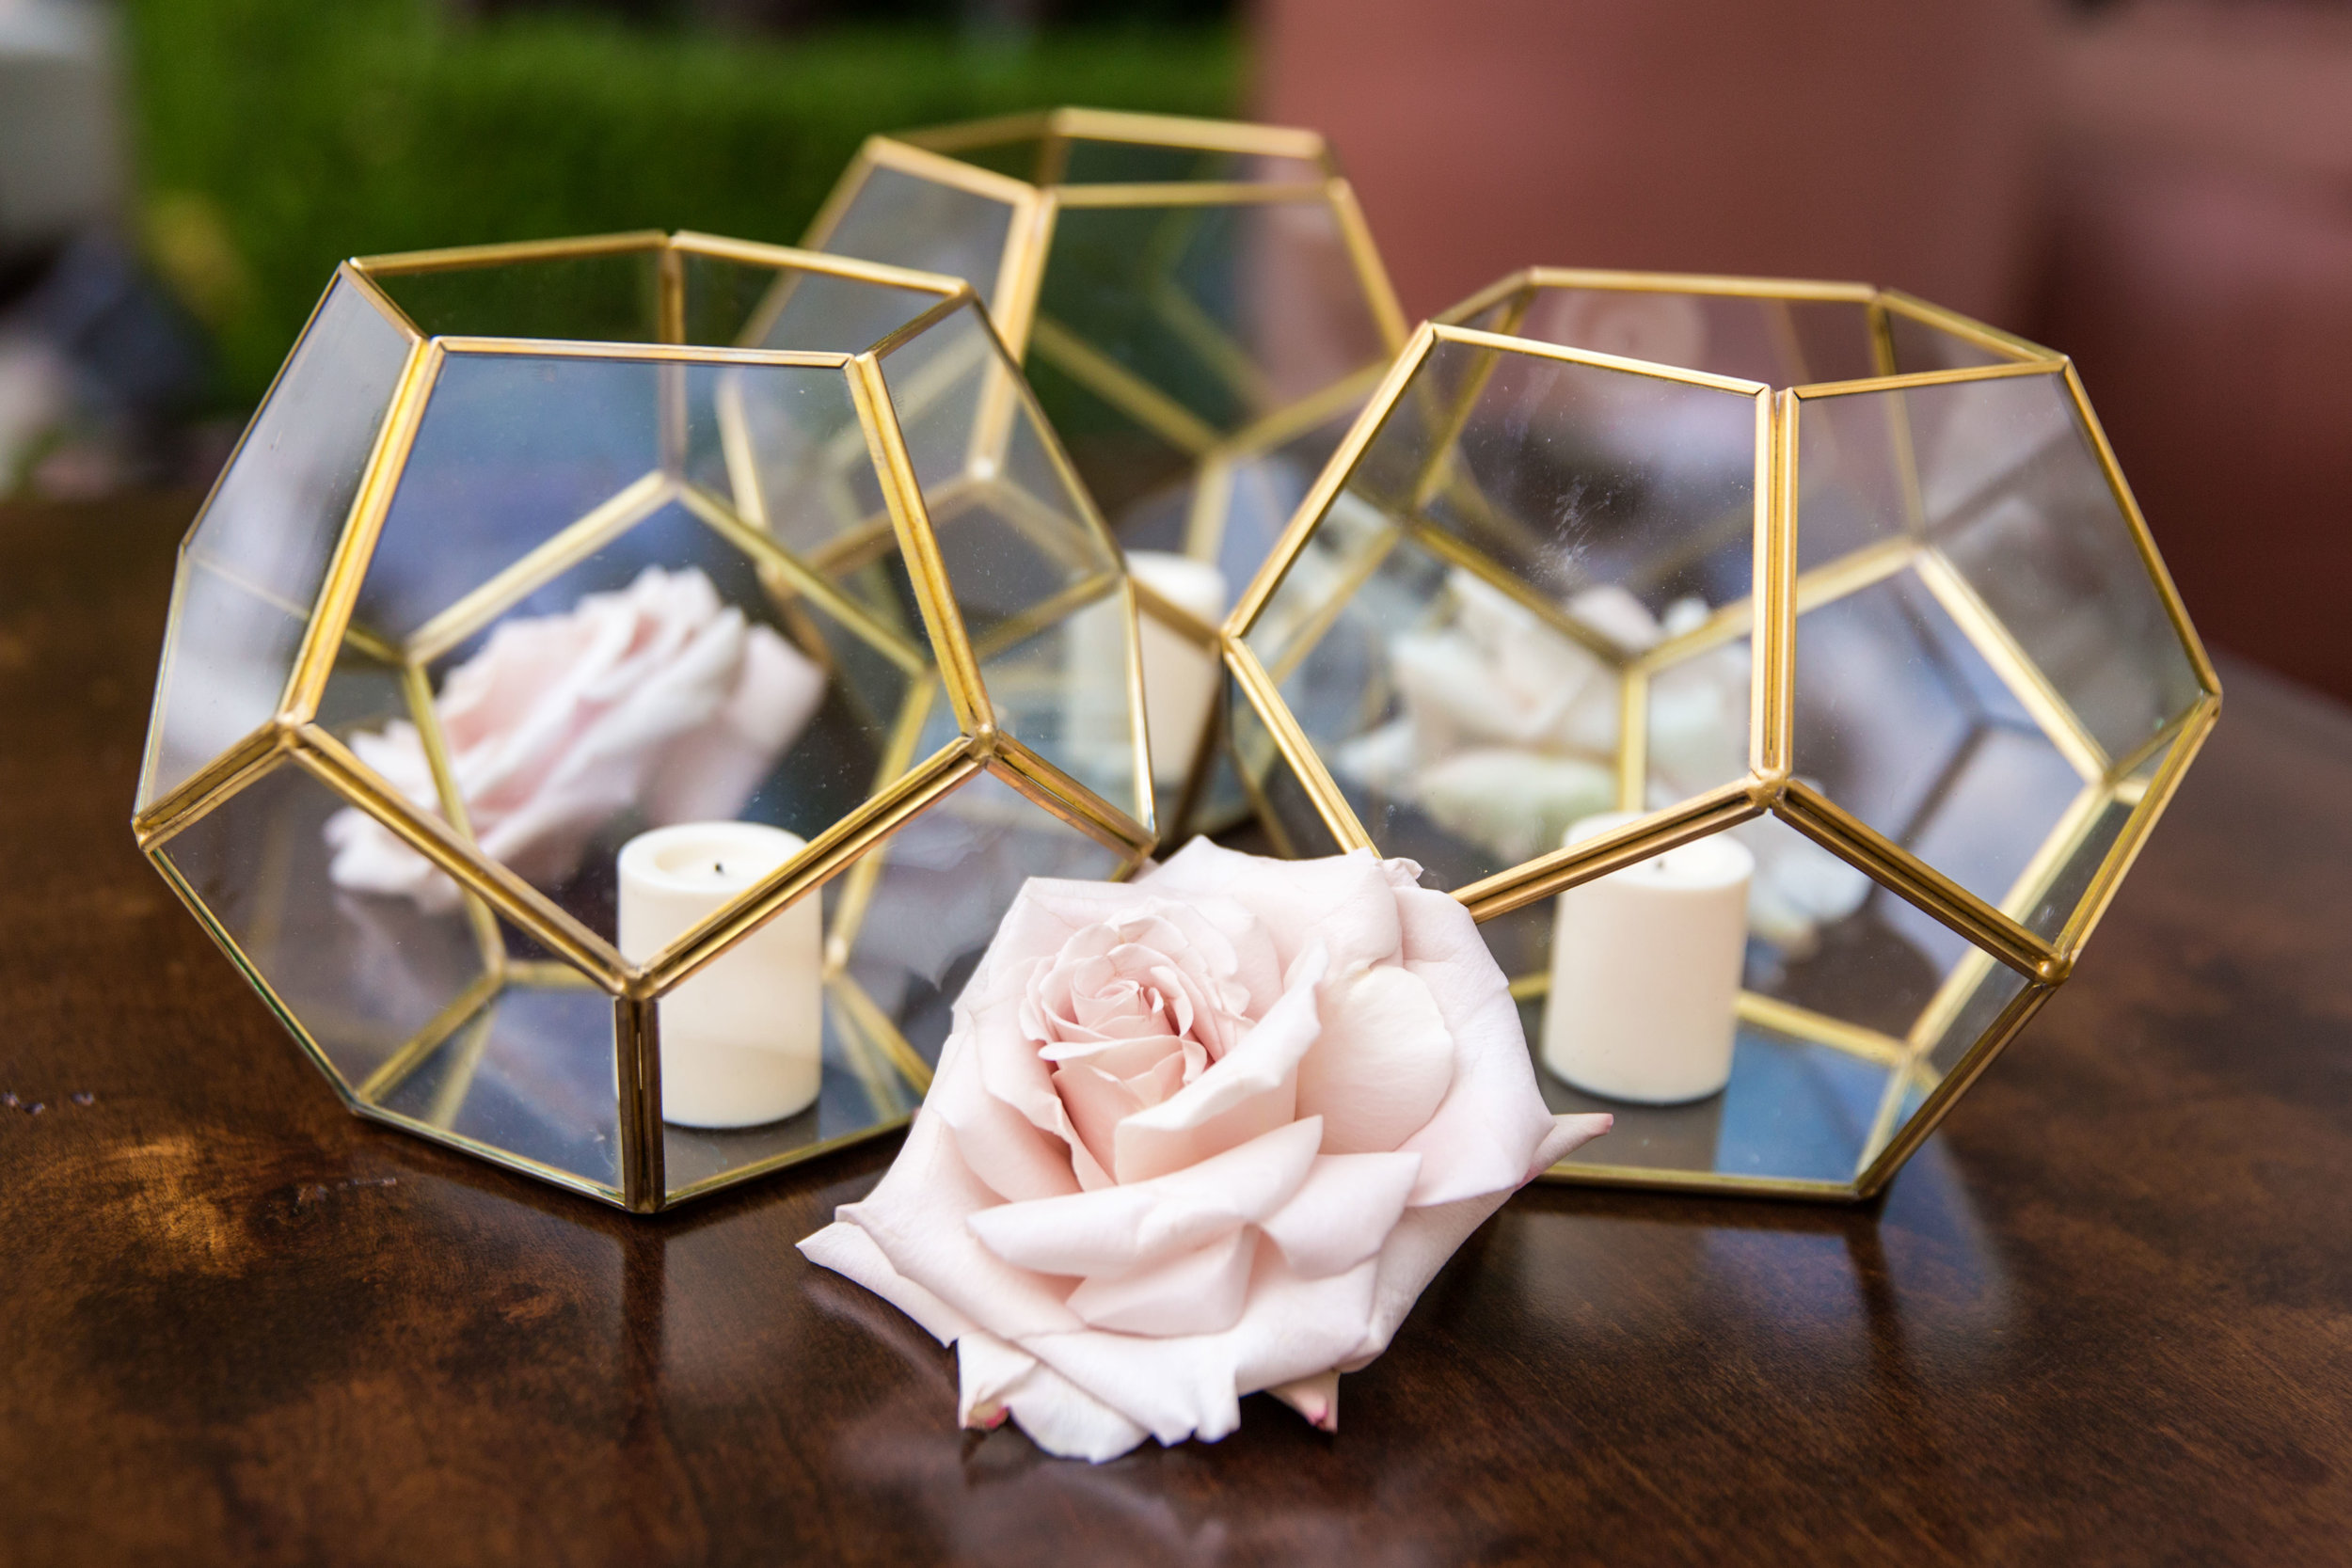 Gold and glass orbs with roses.Wedding Planning by  Andrea Eppolito Events  · Photography by  Shandro Photo   · Wedding Venue  Four Seasons Las Vegas  · Floral and Decor by  Destination by Design  · Chandeliers and Lighting by  LED Unplugged